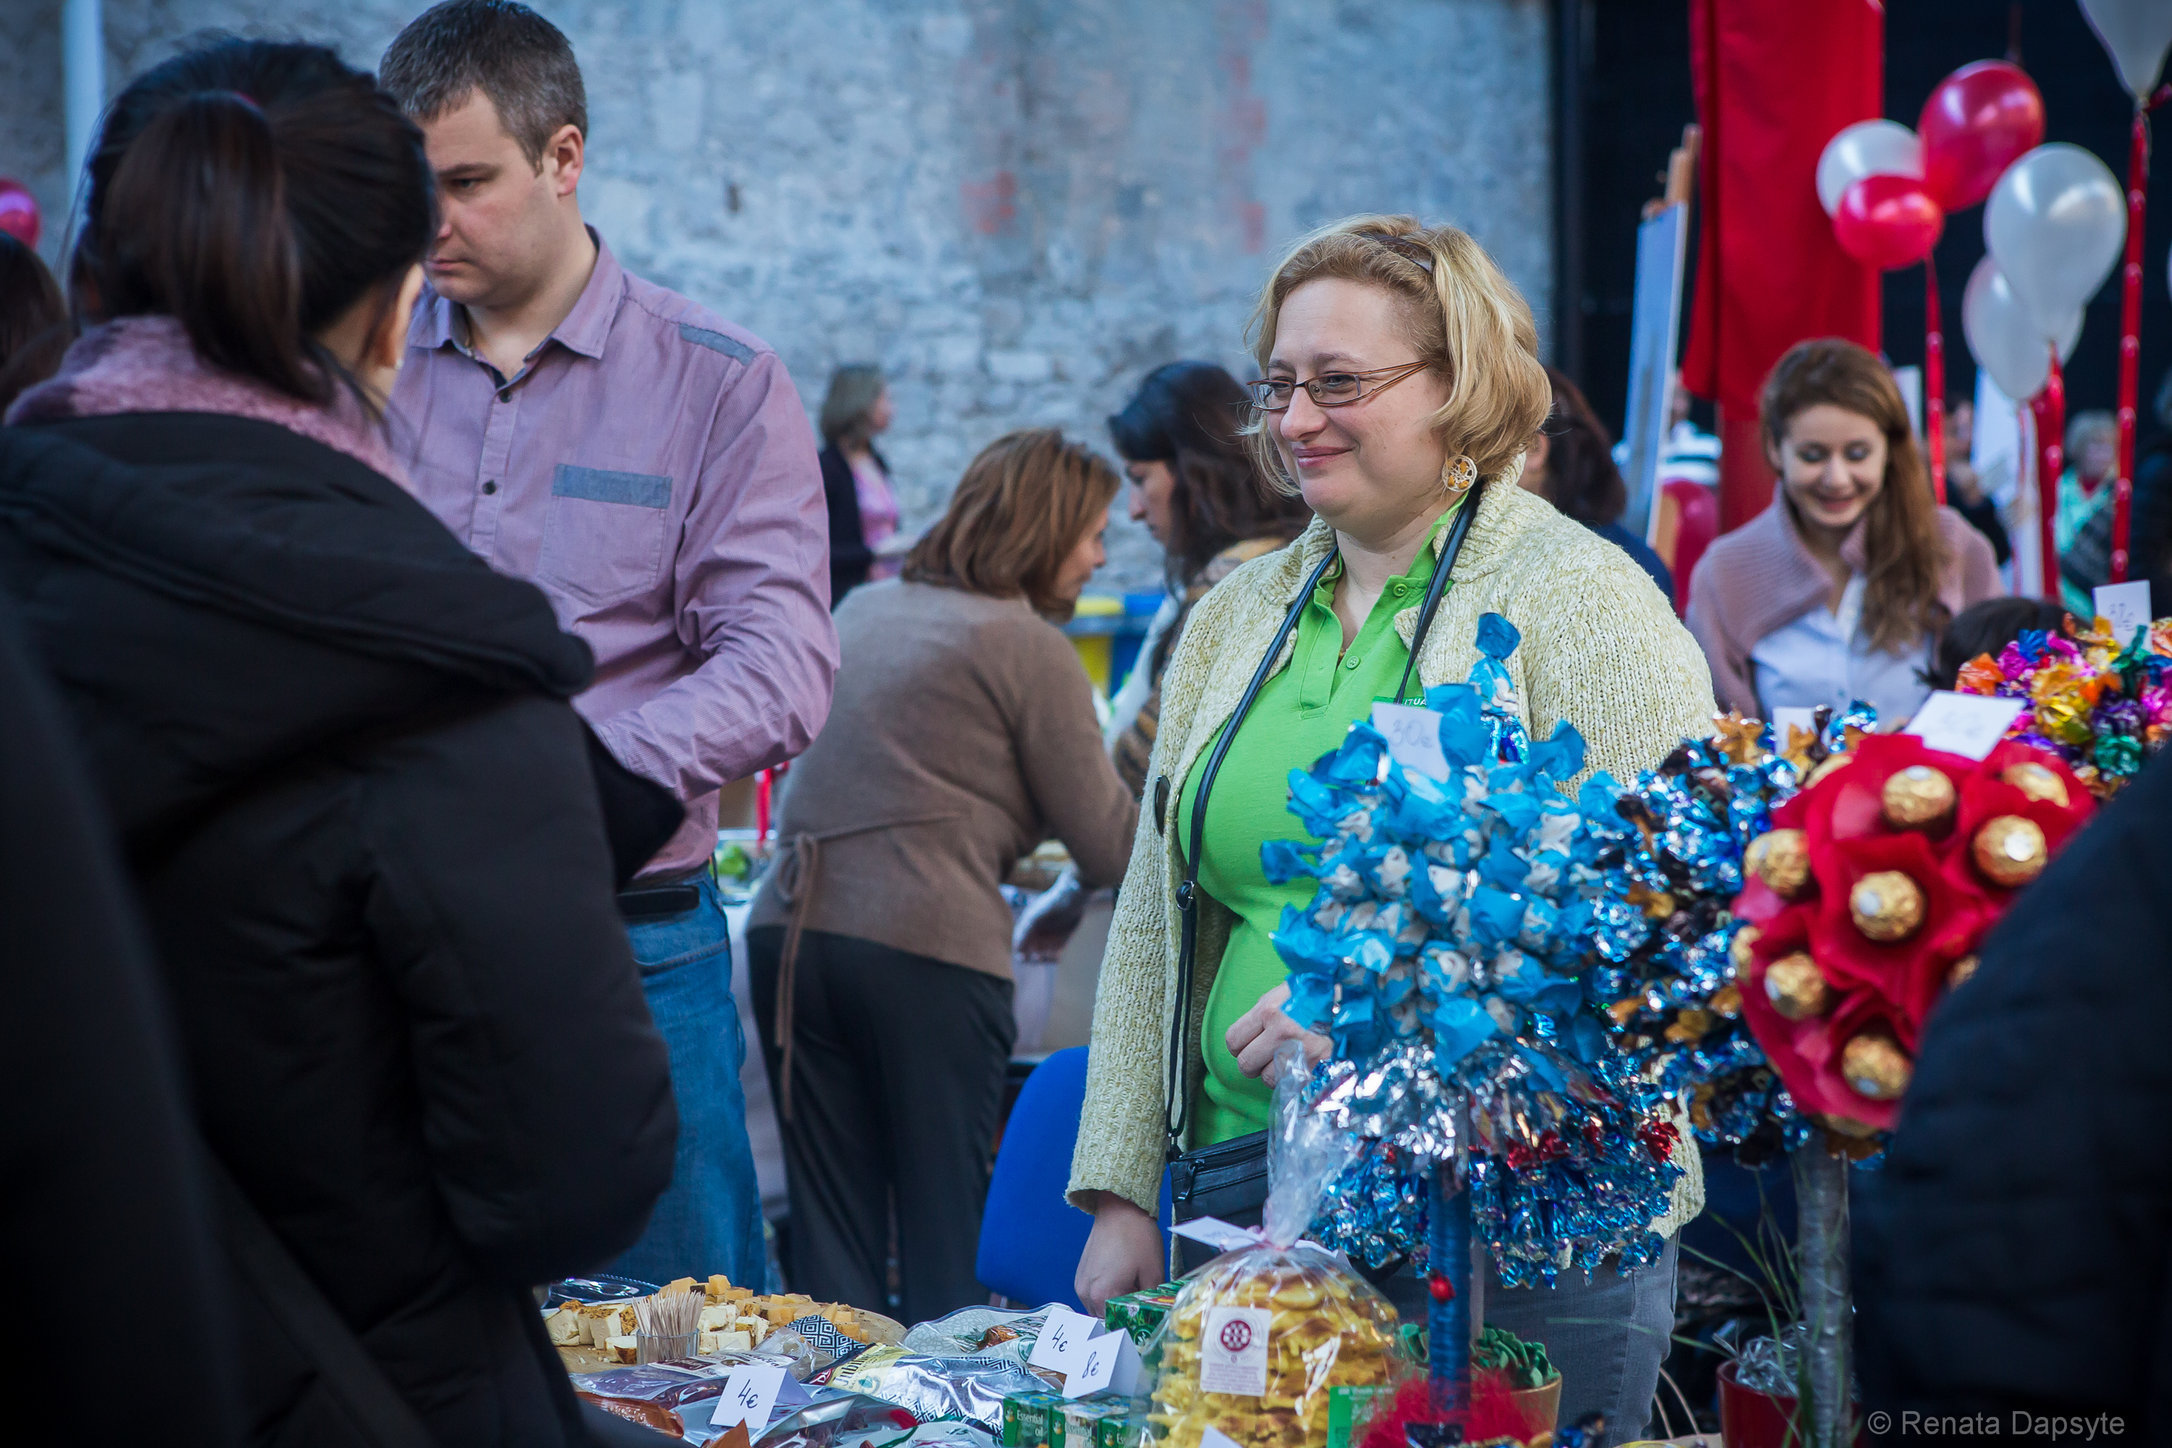 006_International Charity Bazaar Dublin 2013.JPG